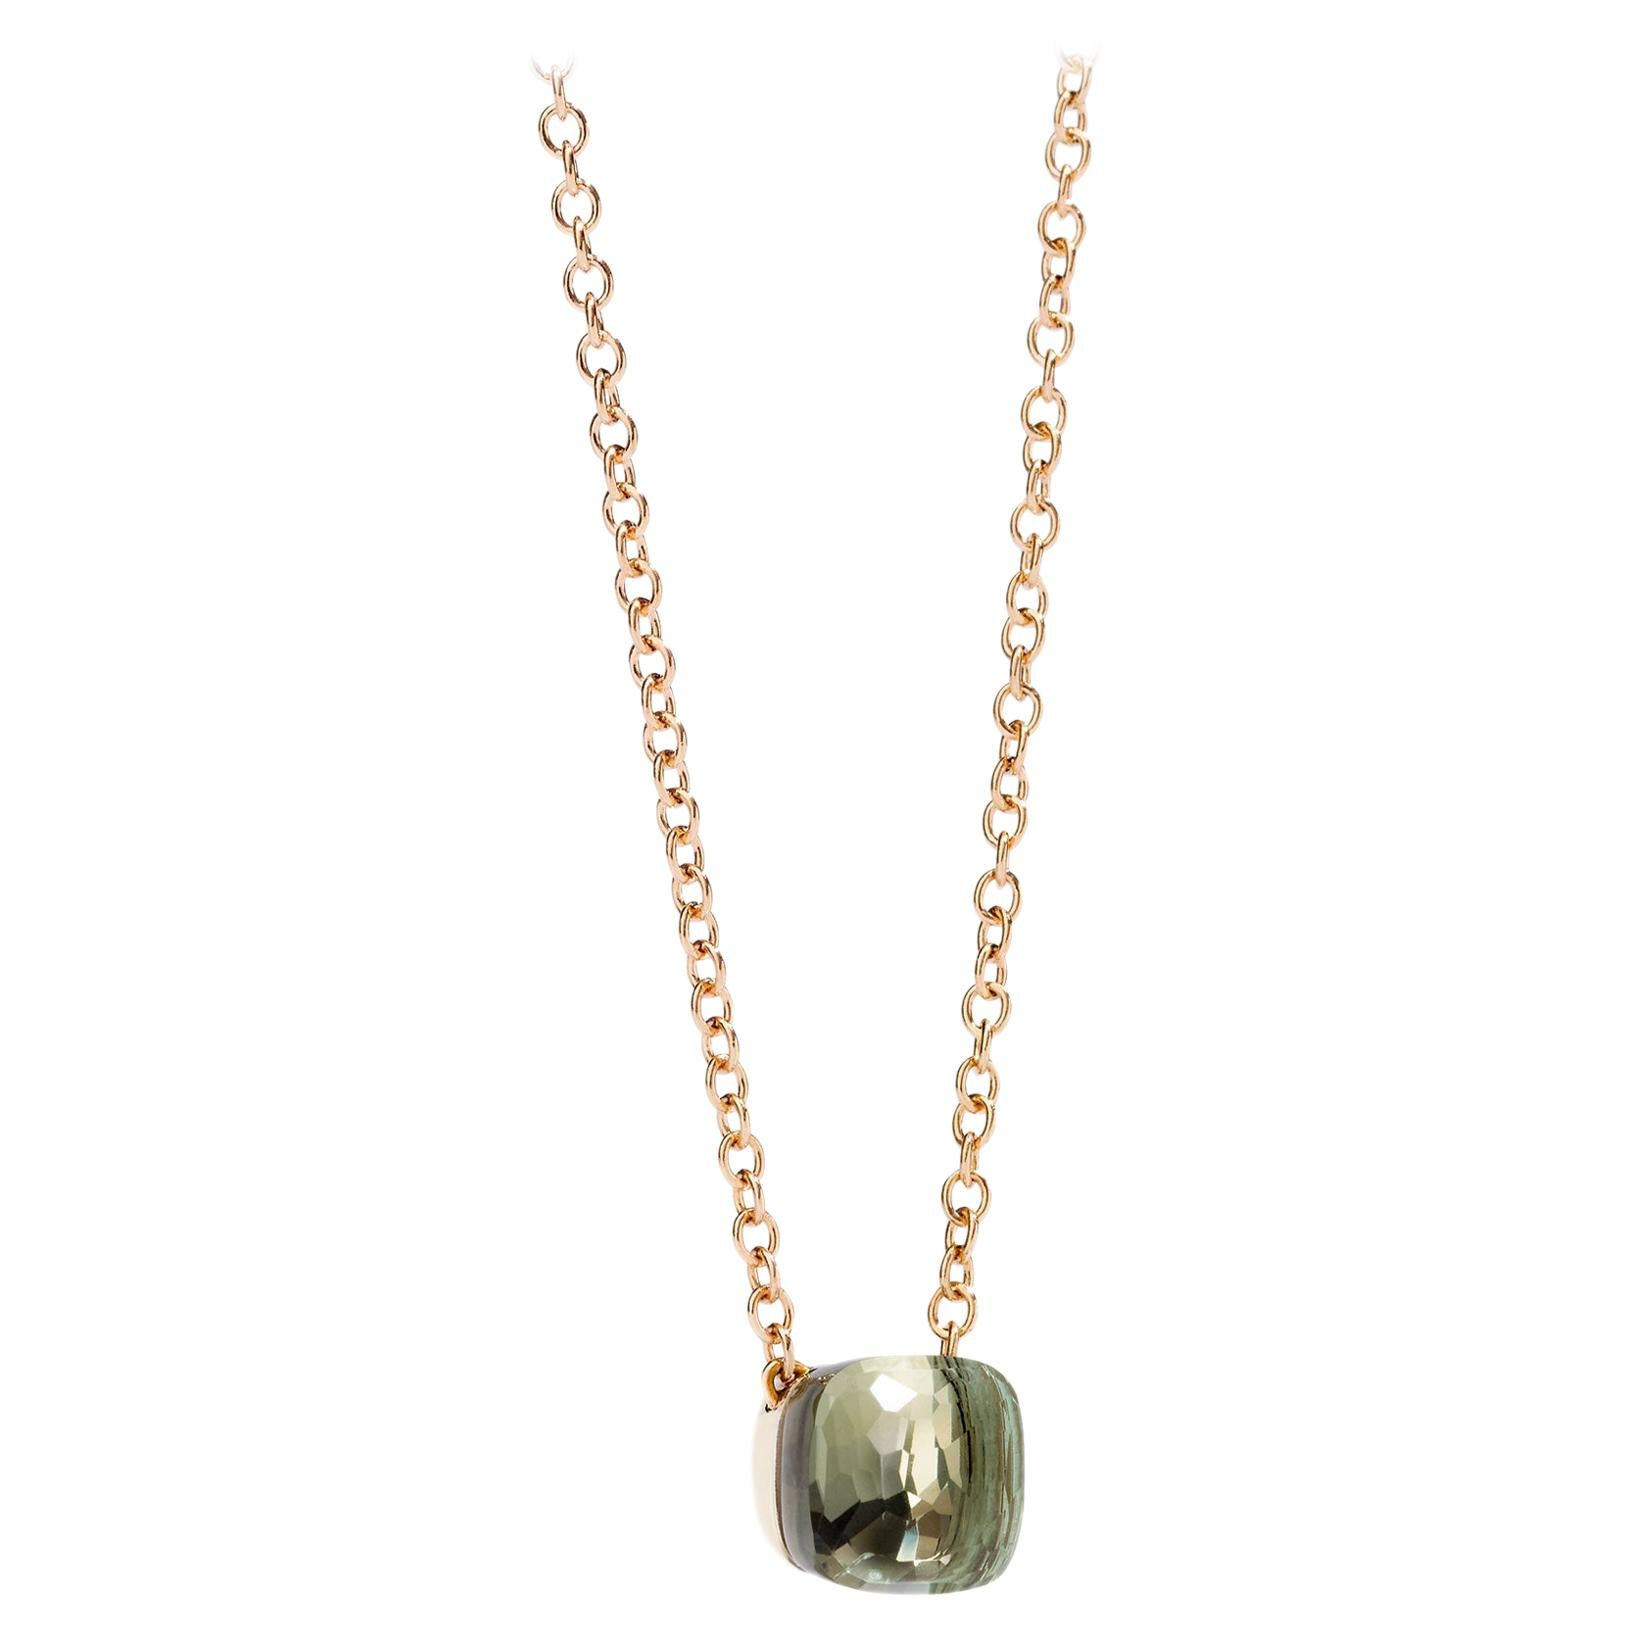 Nudo Necklace